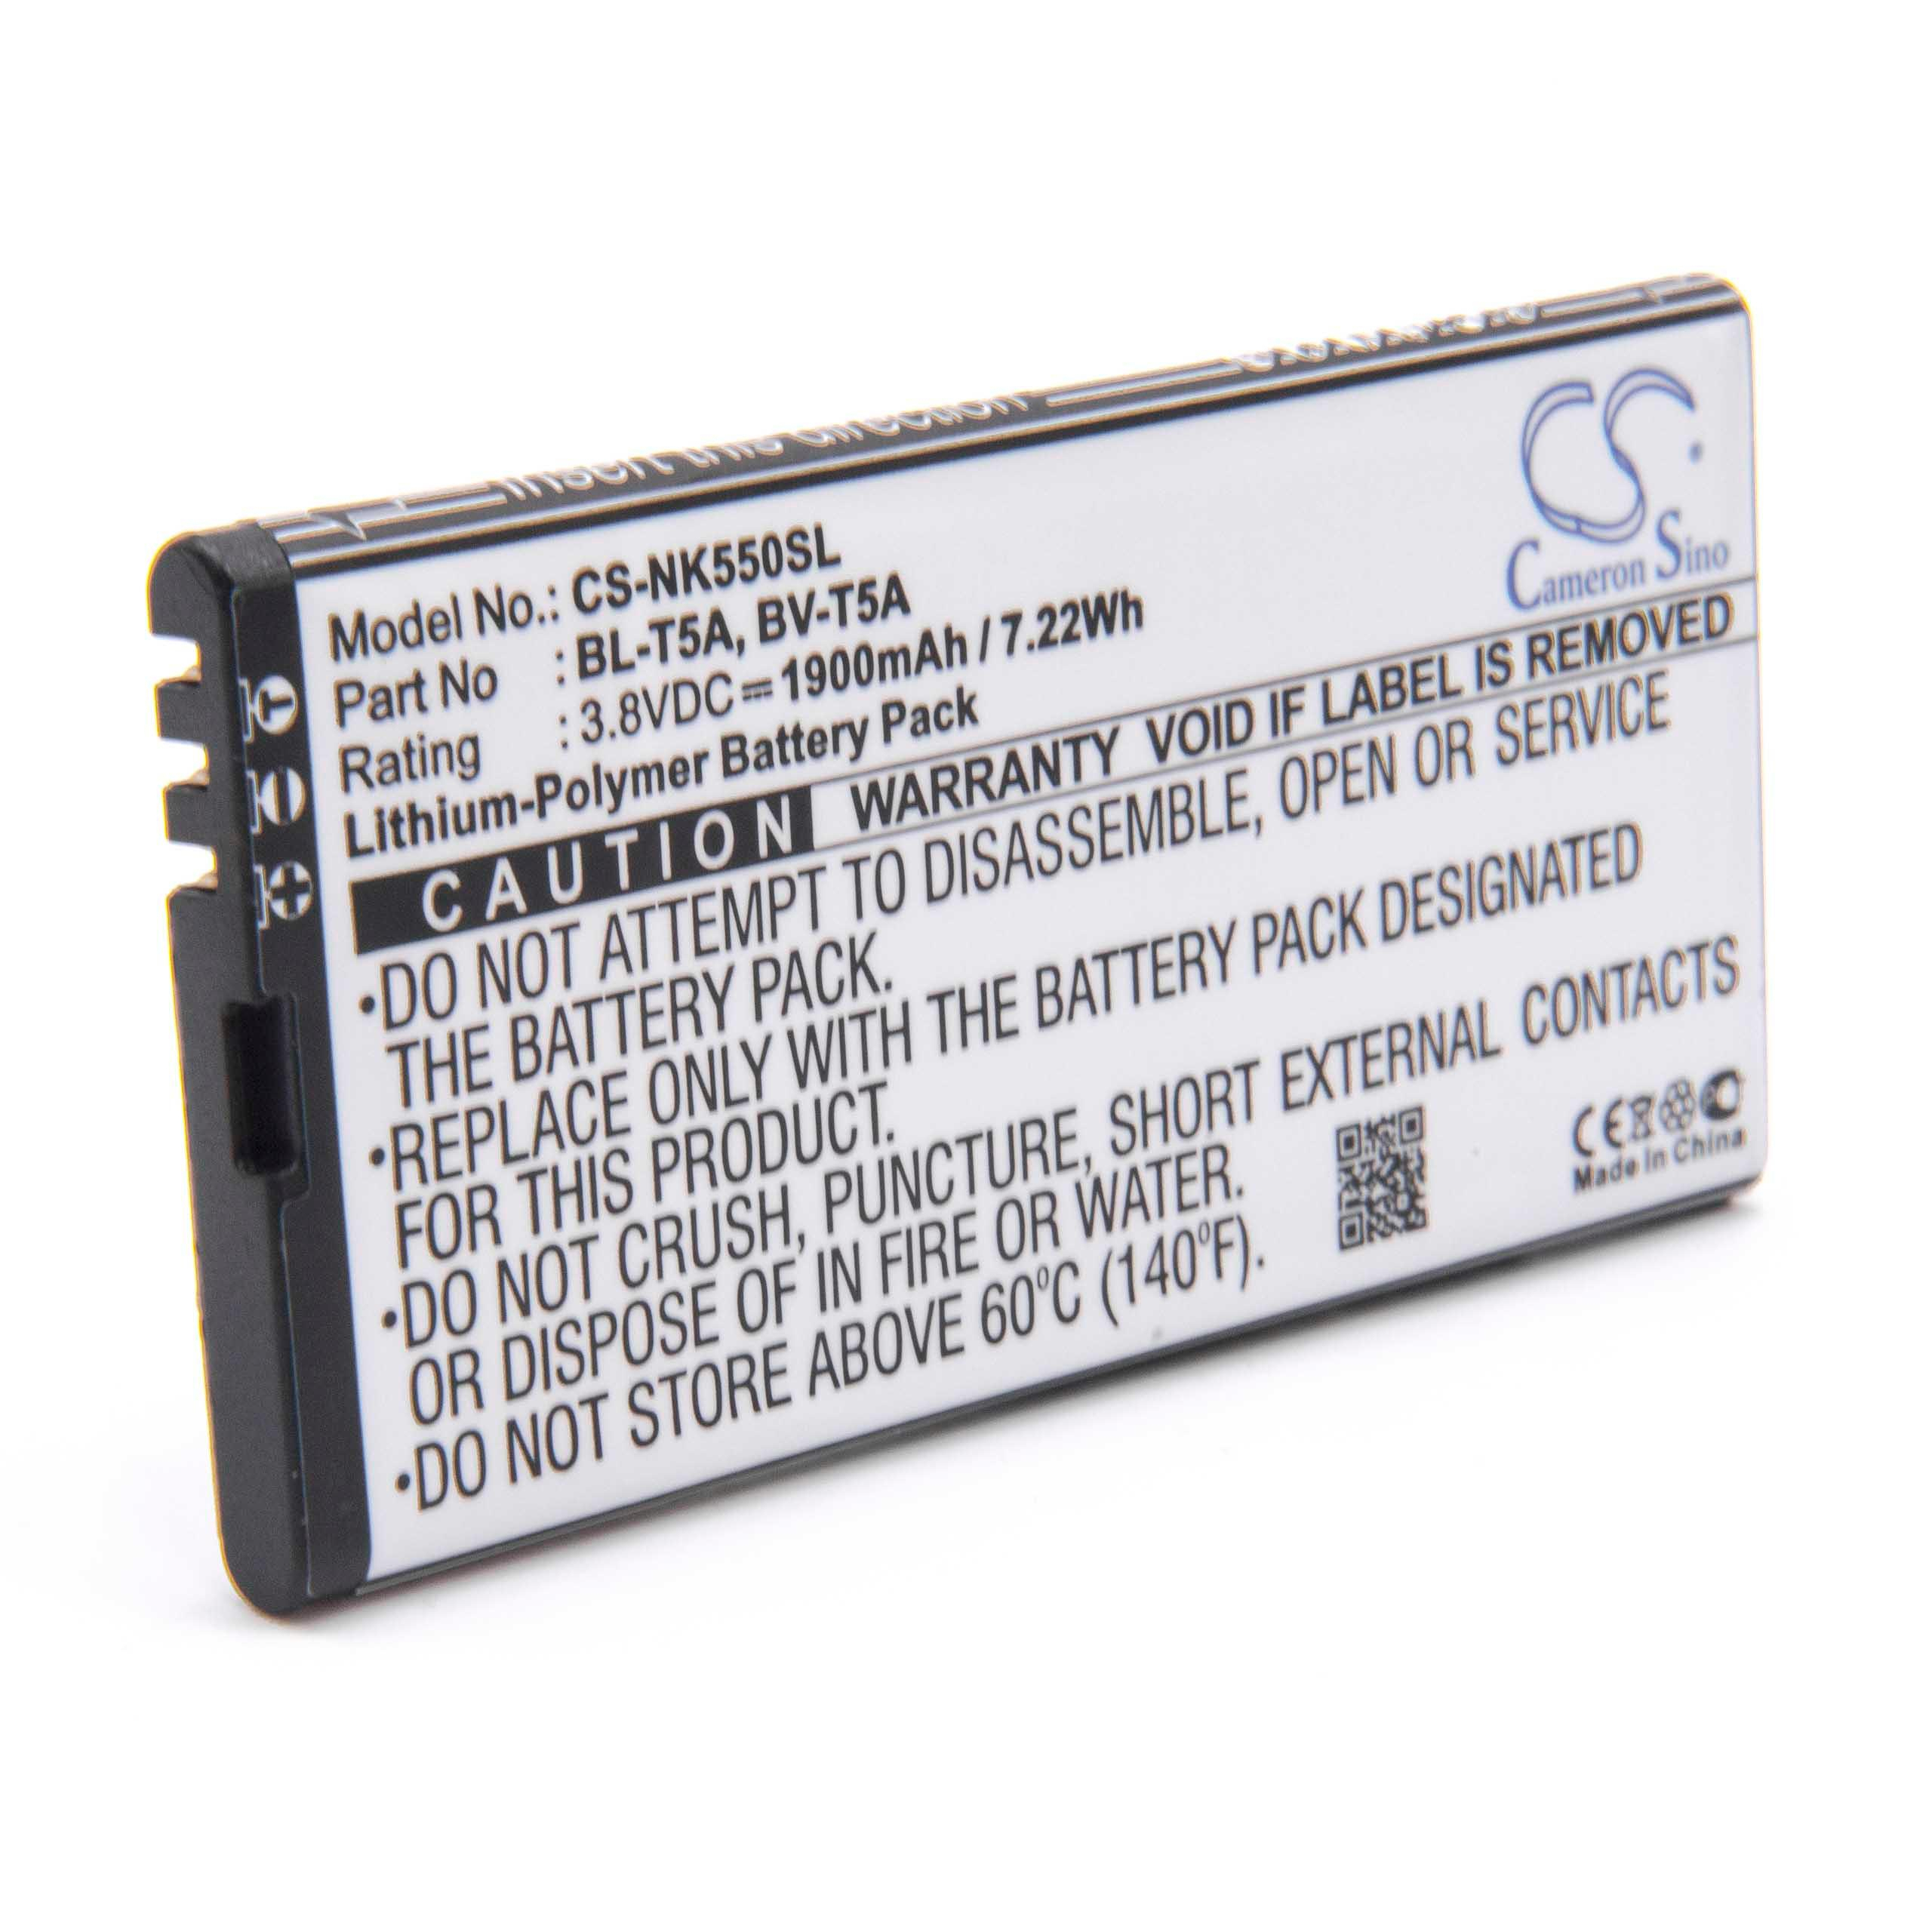 Li-Ion-battery- 1900mAh (3 85V) for mobile phone smartphone phone replaces  Nokia BL-T5A, BV-T5A